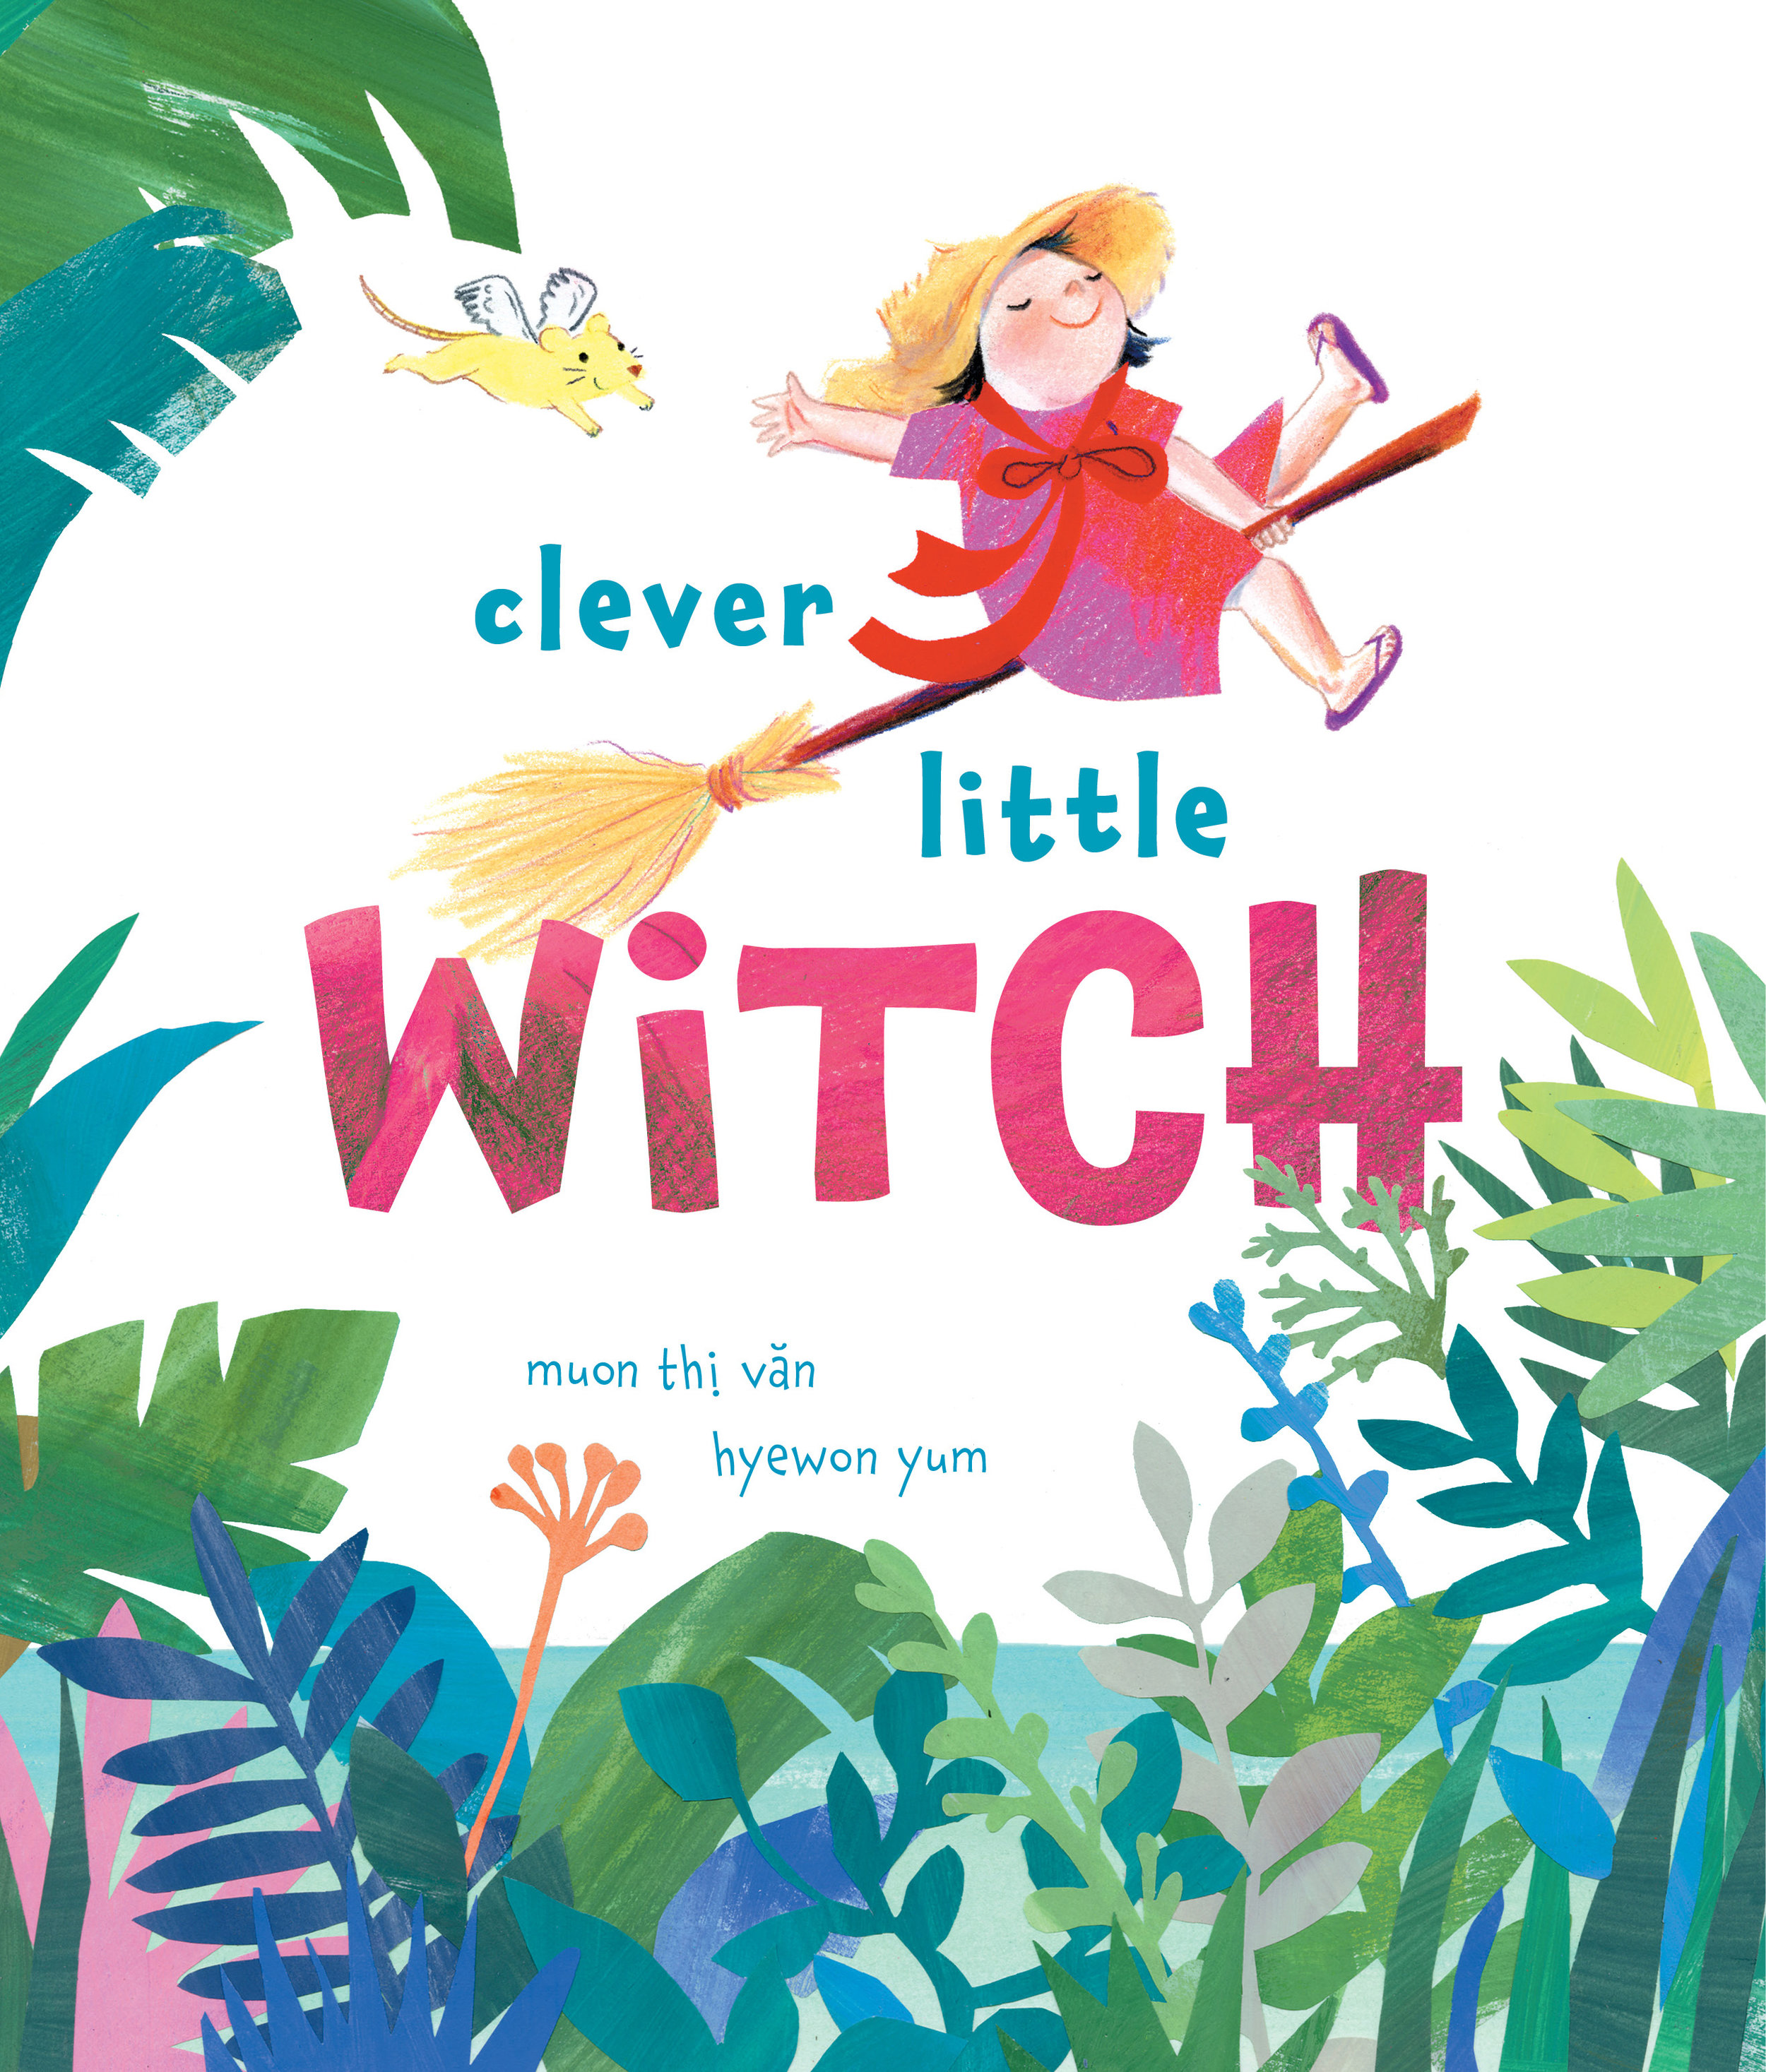 Clever little witch low-res cvr.jpg